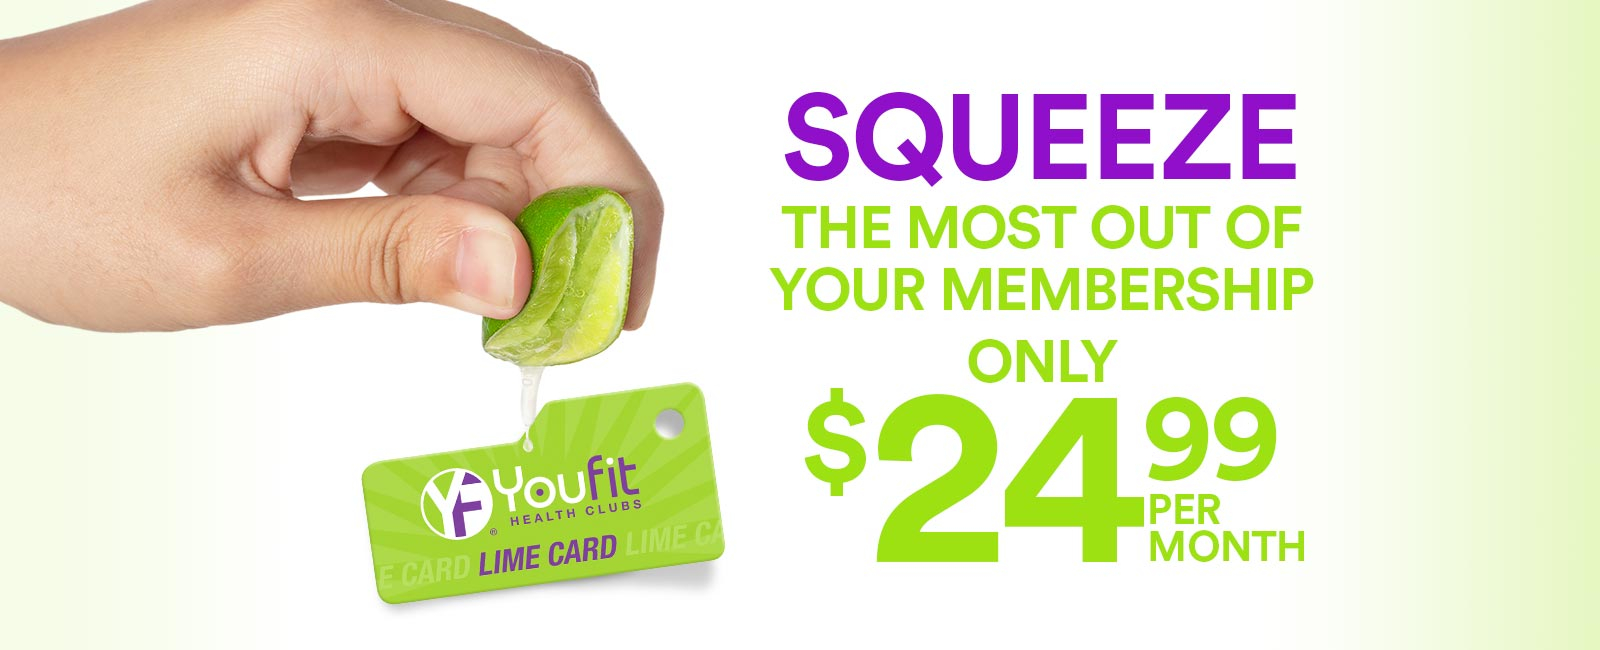 Squeeze the most out of your membership - only $24.99 per month